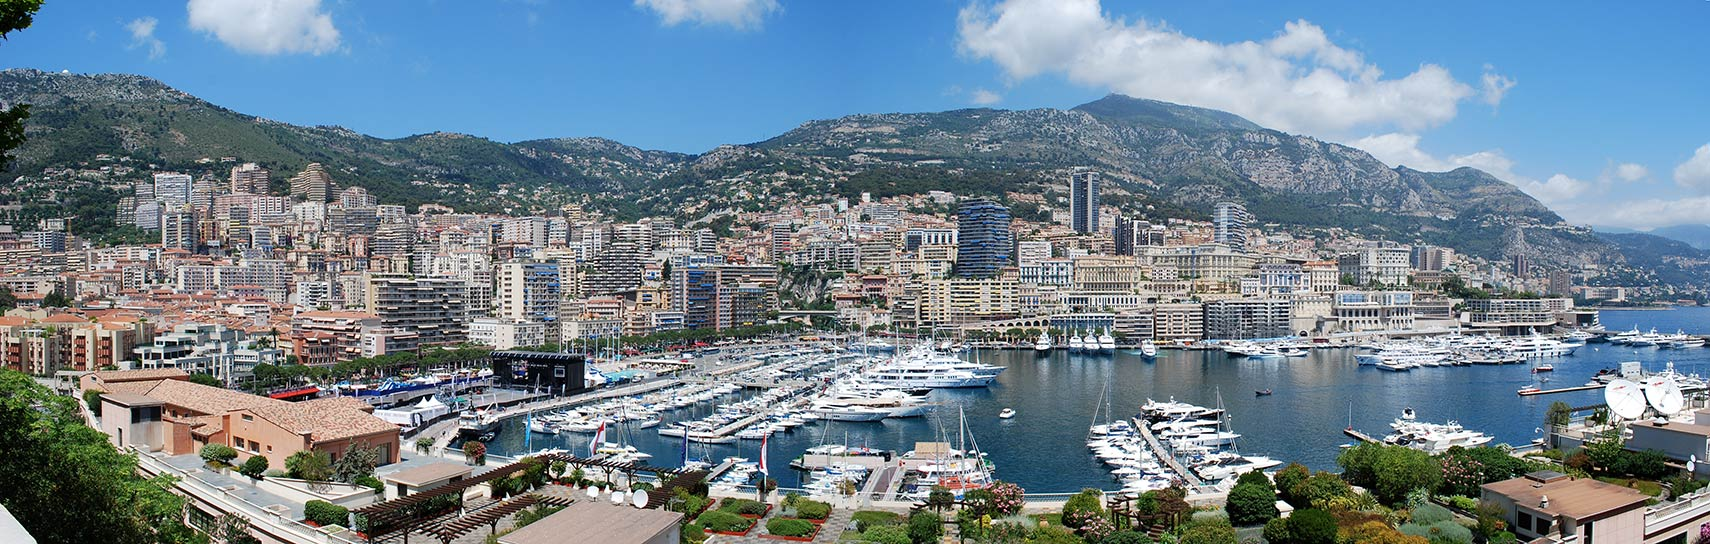 monaco is the capital of what country